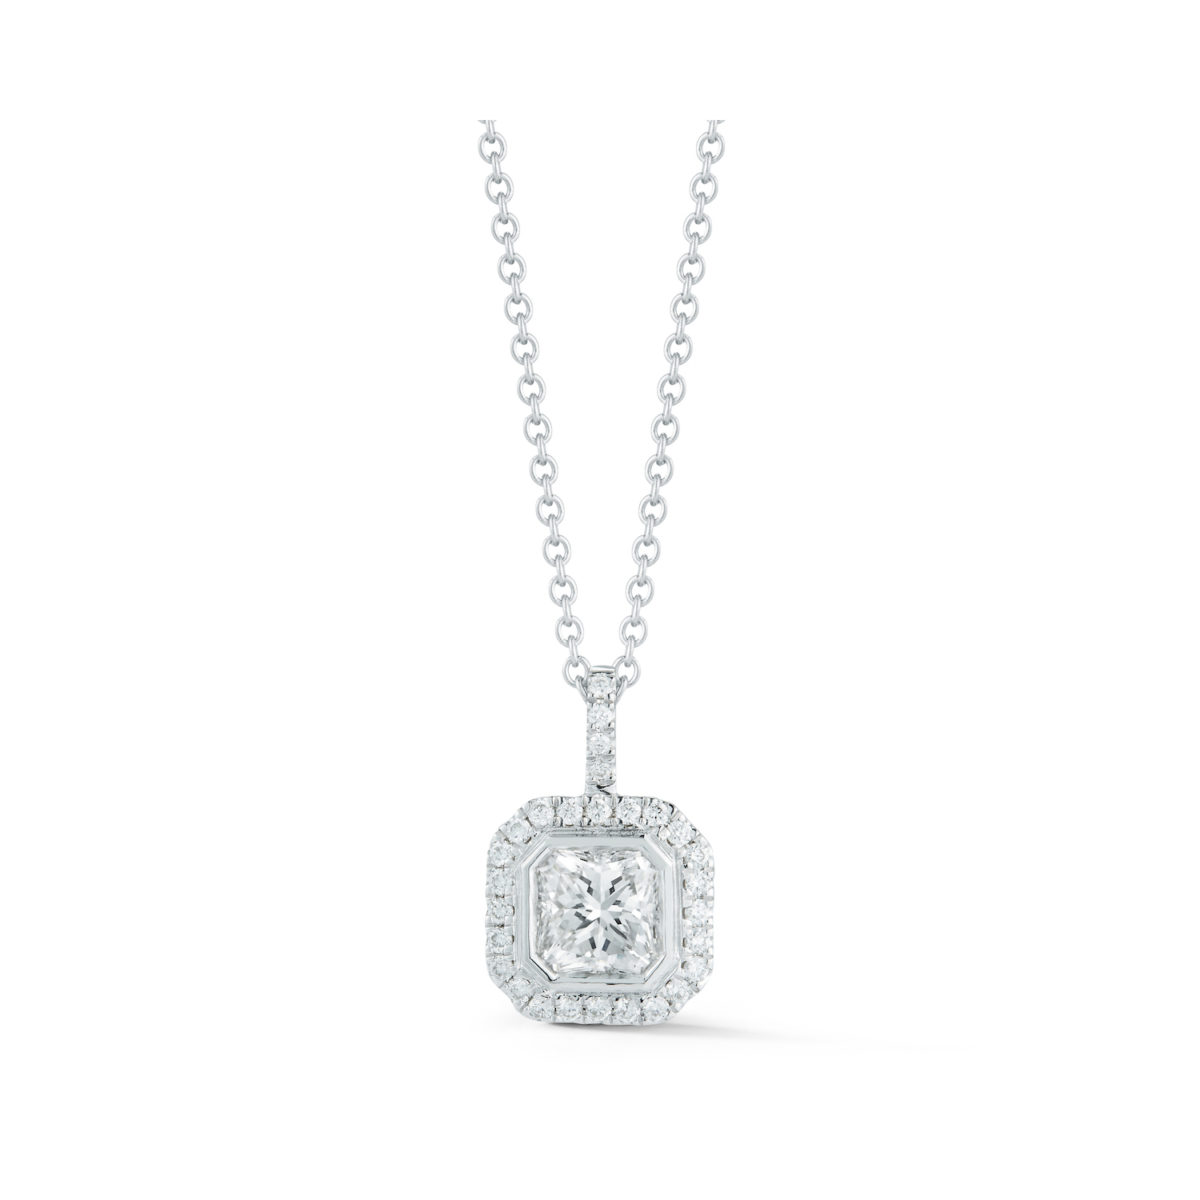 0 95 Carat Radiant Cut Diamond Halo Pendant Marshall